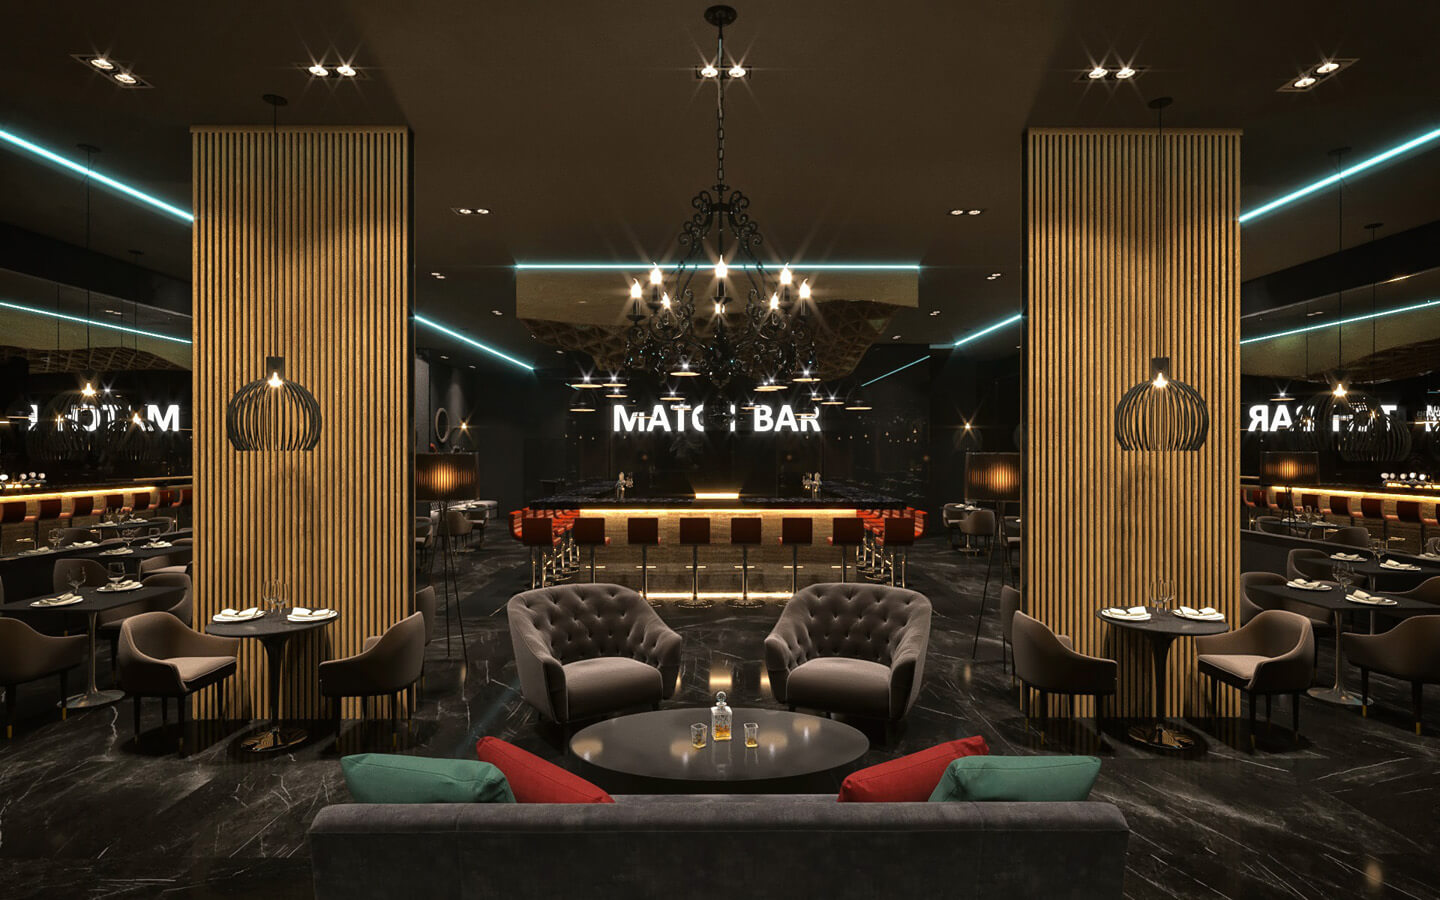 Matchbar Restaurant